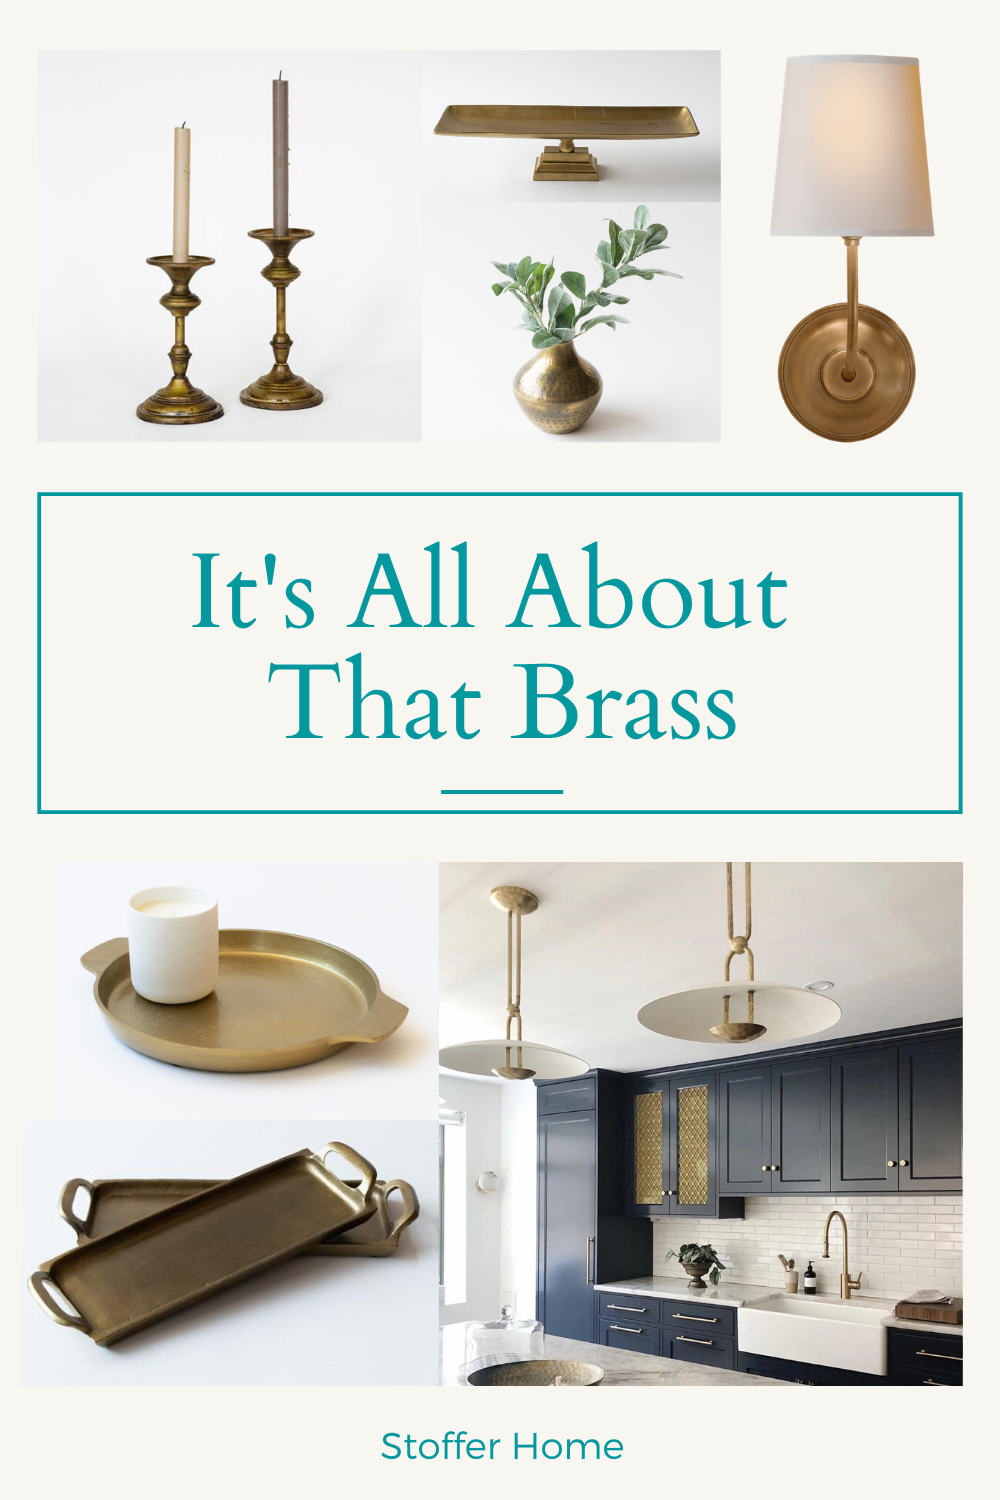 If you are looking for ideas and inspiration to add touches of luxury and brass to your home, look no further. Stoffer Home has so many pretty accessories, decor and light fixture to add that timeless warmth to your home through these brass pieces. #brass #brassdecor #homedecor #luxuryhomedecor #brassaccessories #homeaccessories #brassinspiration #homeinspiration #stofferhome #affiliate